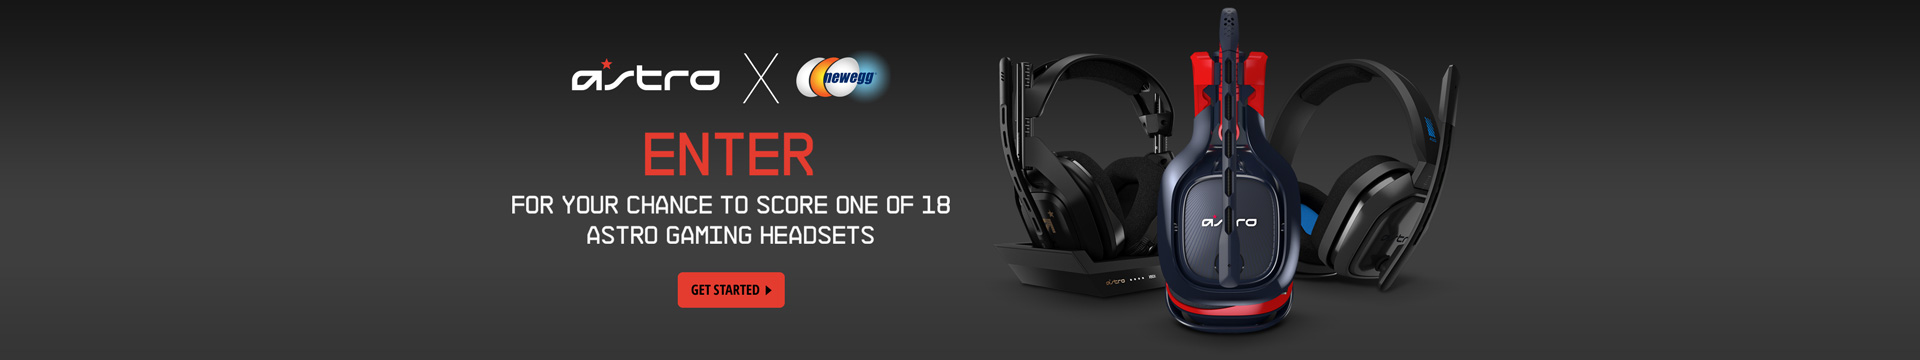 Enter for your chance to score one of 18 Astro gaming headsets